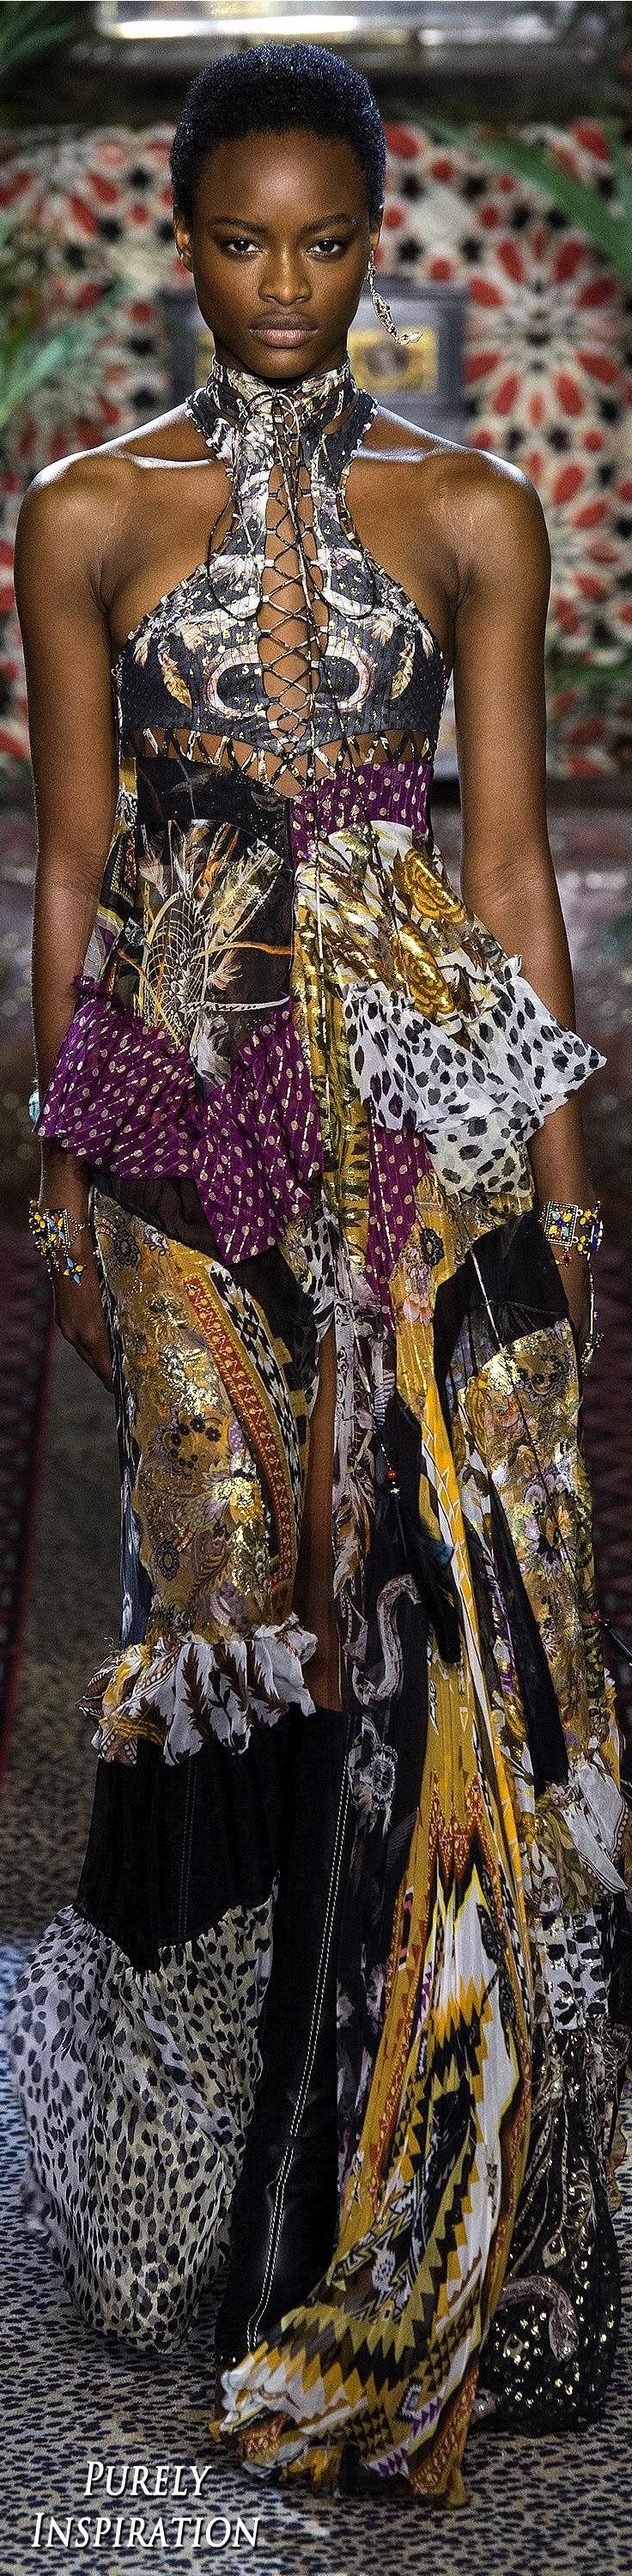 Roberto Cavalli SS2017 Woman's Fashion RTW | Purely Inspiration